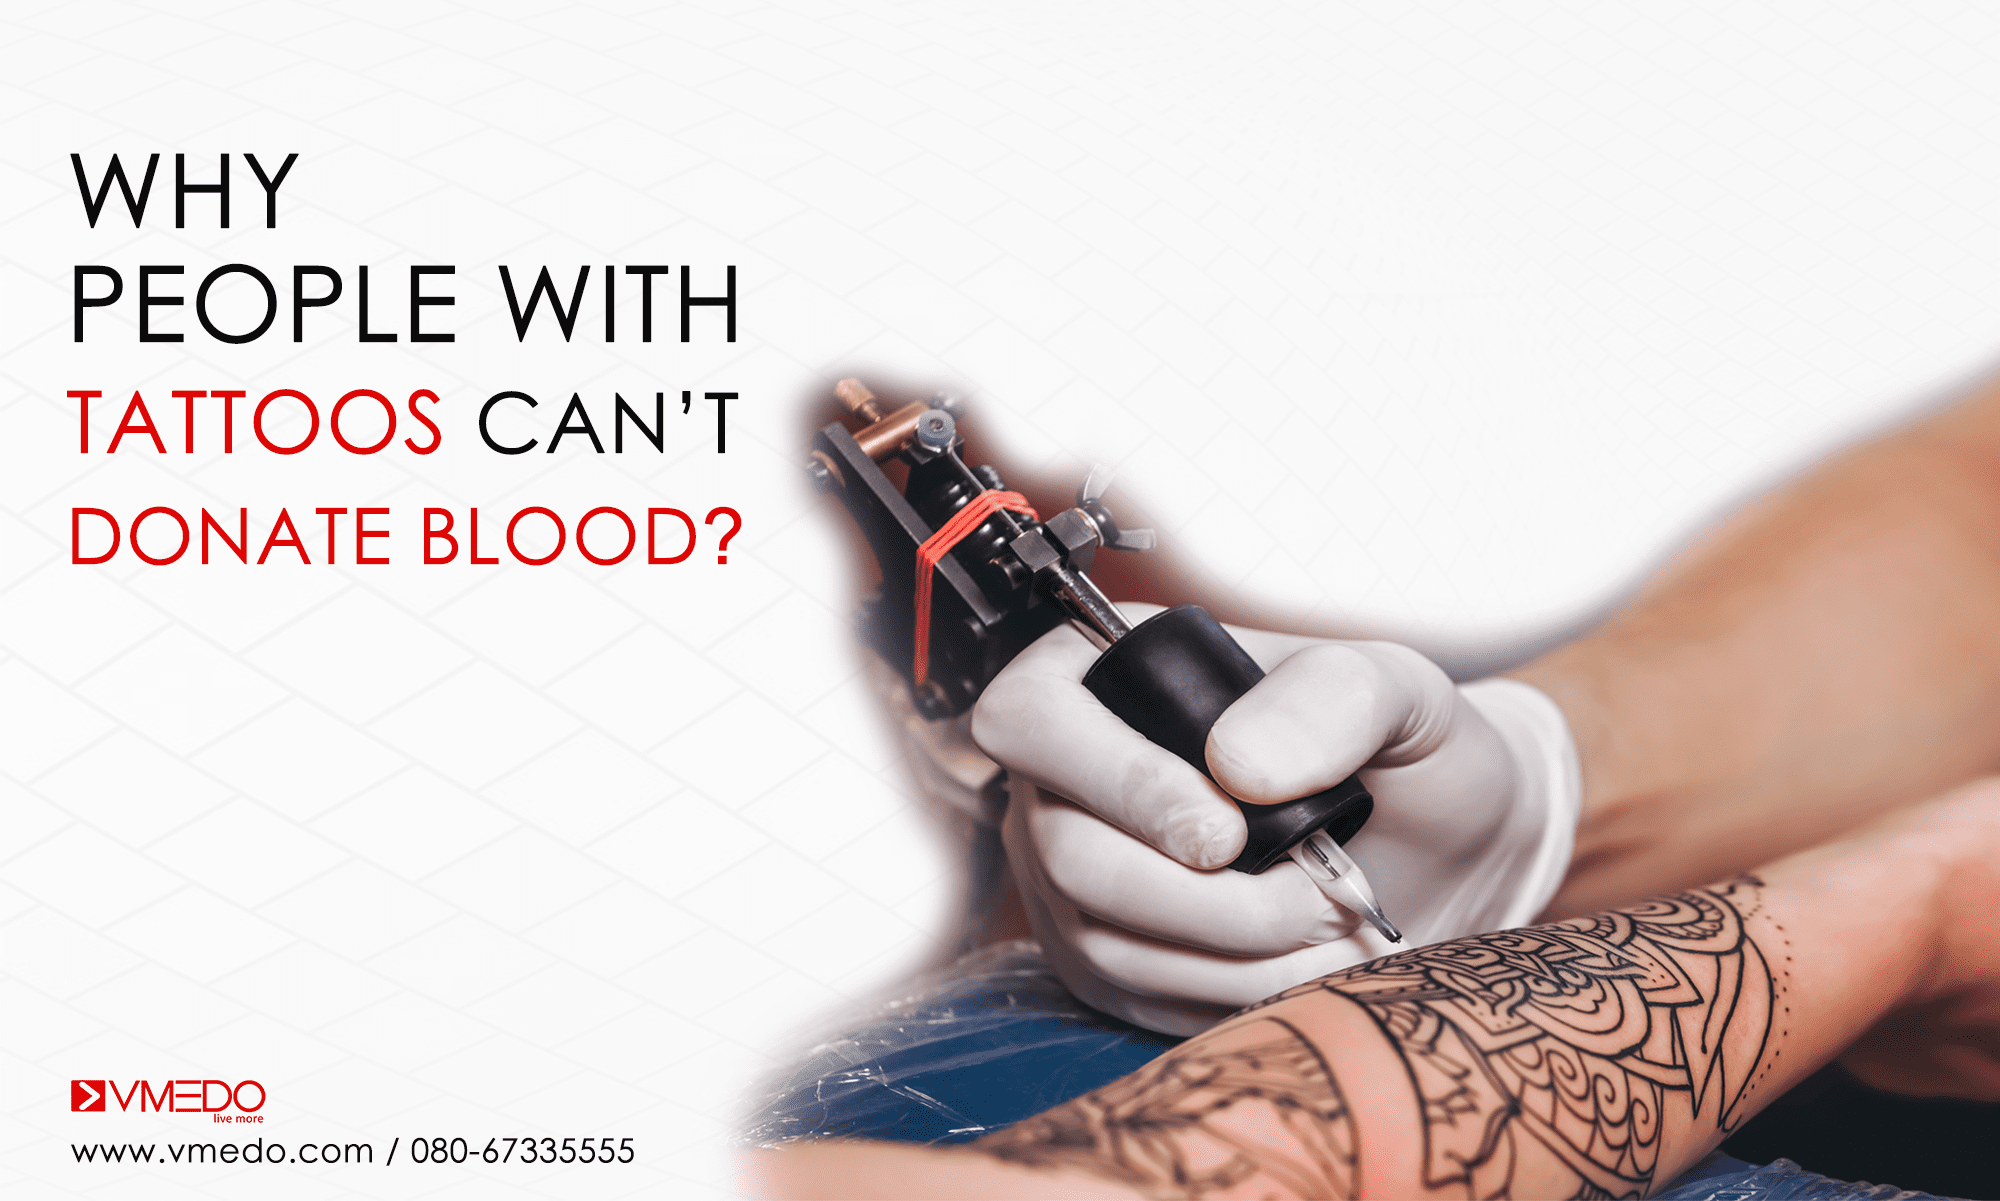 Donate Blood After Piercing